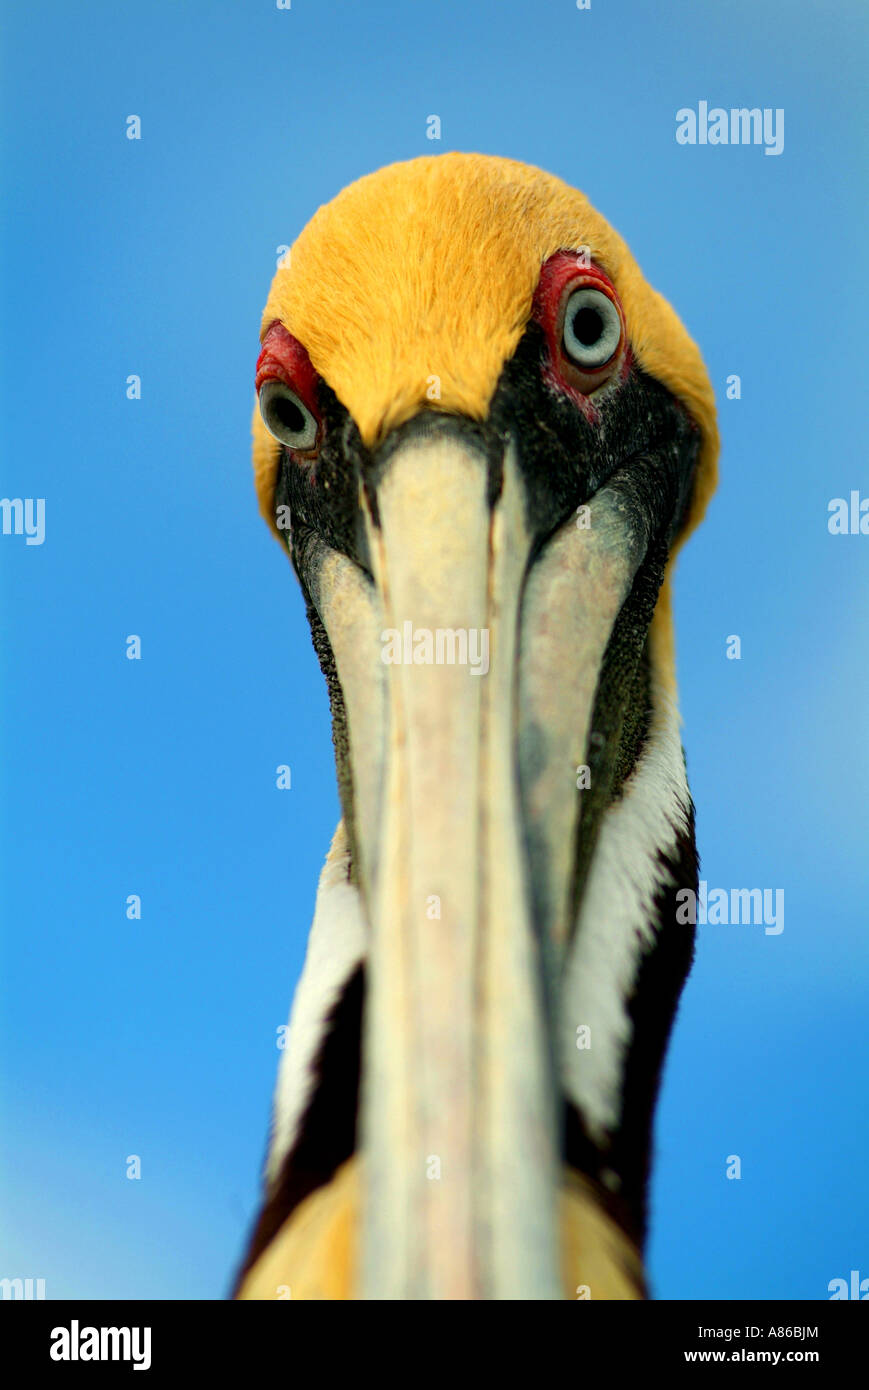 The Florida Keys Wild Bird Center attracts many varieties of wild shore birds including the white ibis Brown Pelican Stock Photo